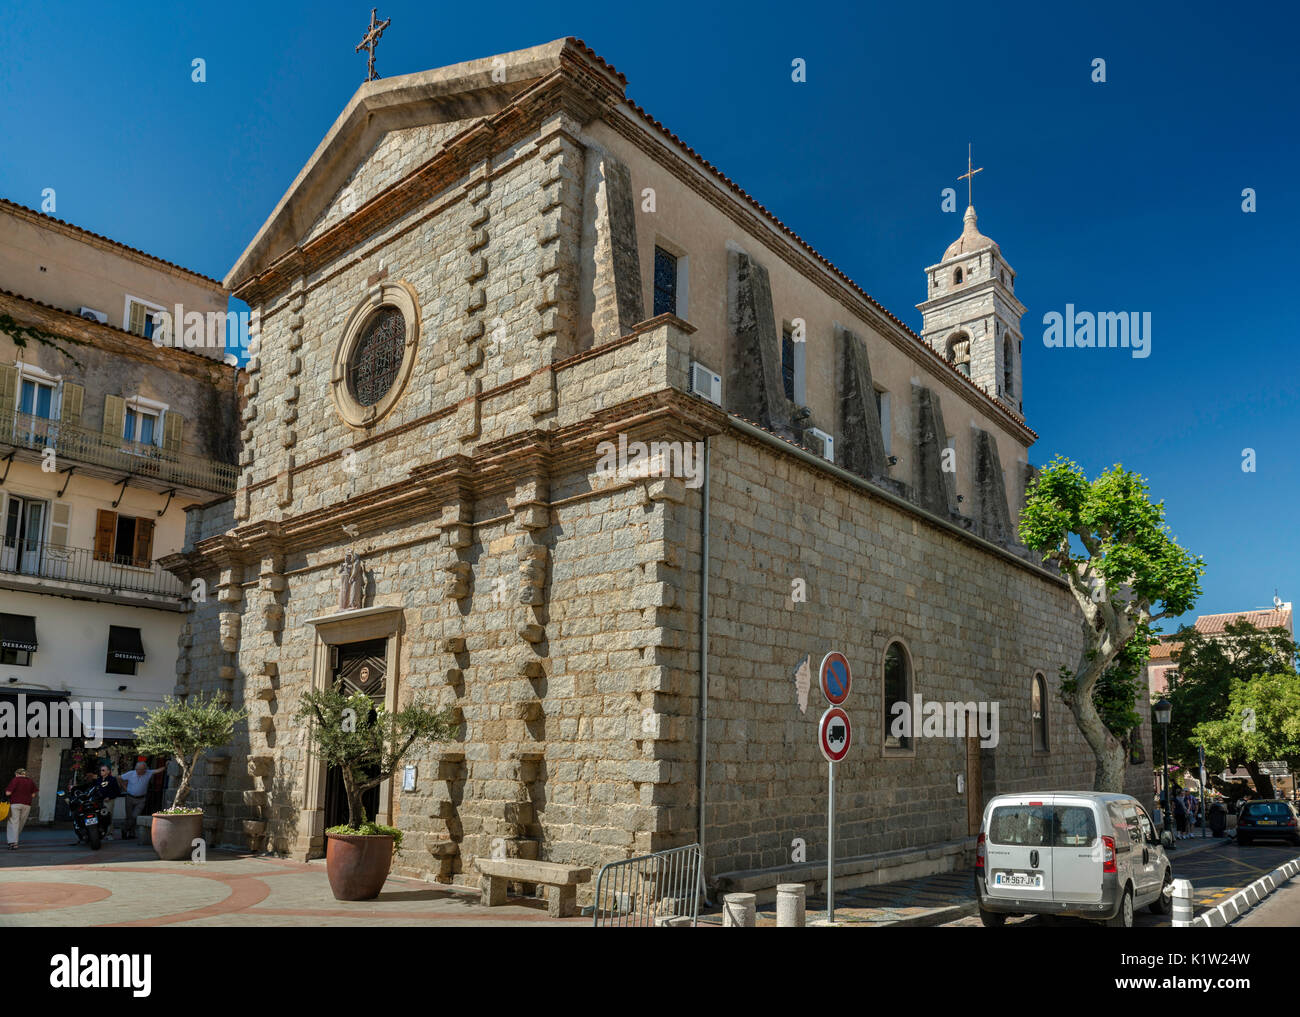 St-Jean-Baptiste Church, 16th century, at Place de la Republique, in Porto-Vecchio, Corsica, France Stock Photo